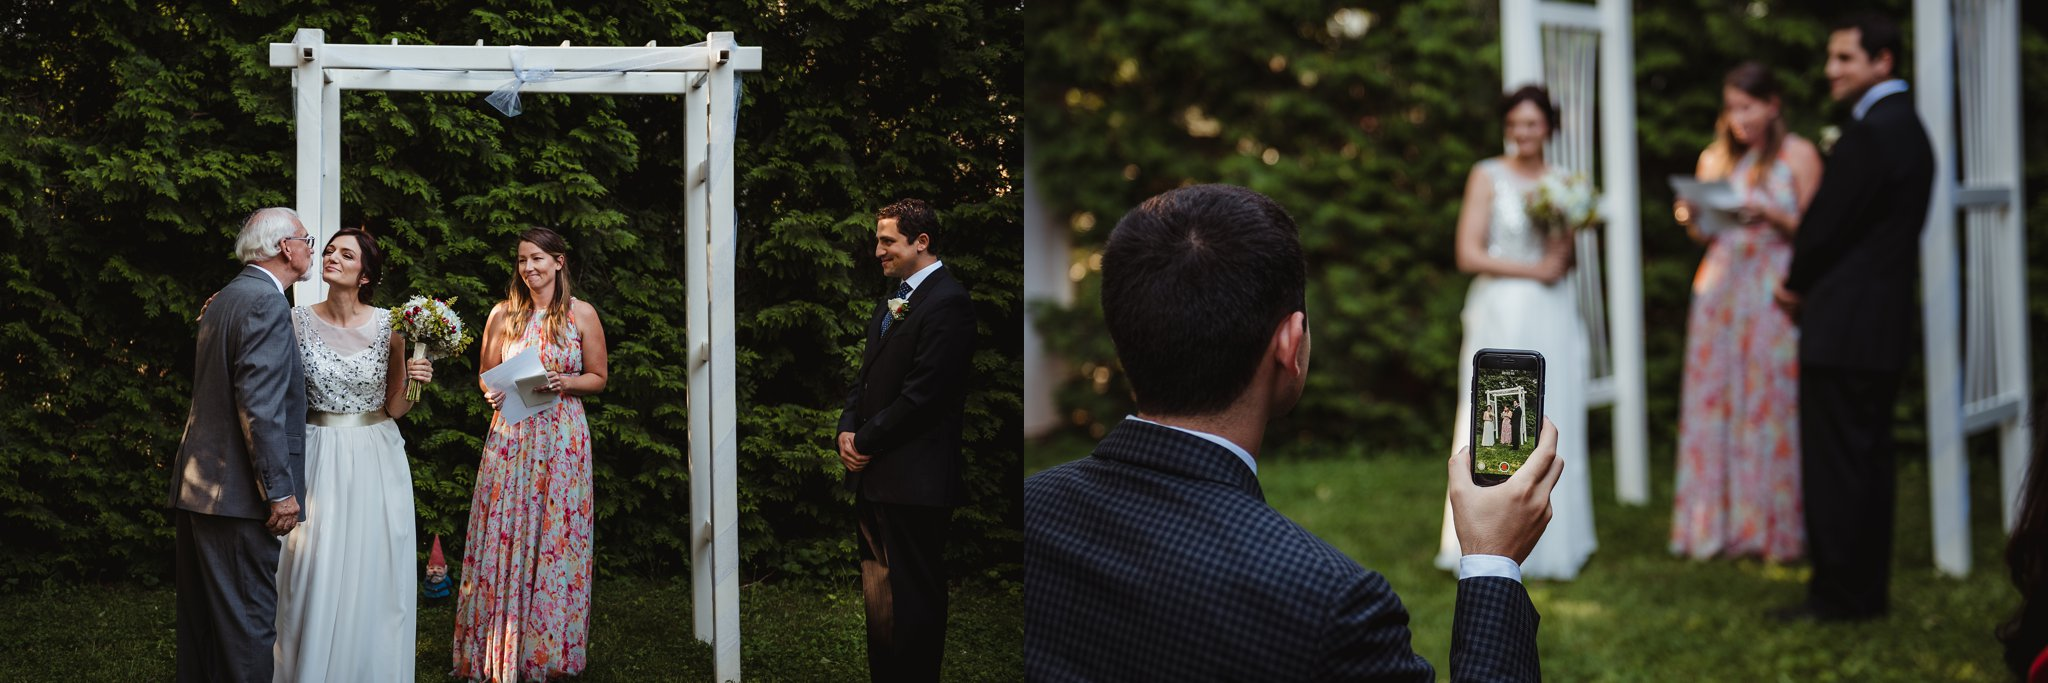 Their intimate wedding ceremony took place in their backyard in downtown Raleigh, North Carolina, photos by Rose Trail Images.